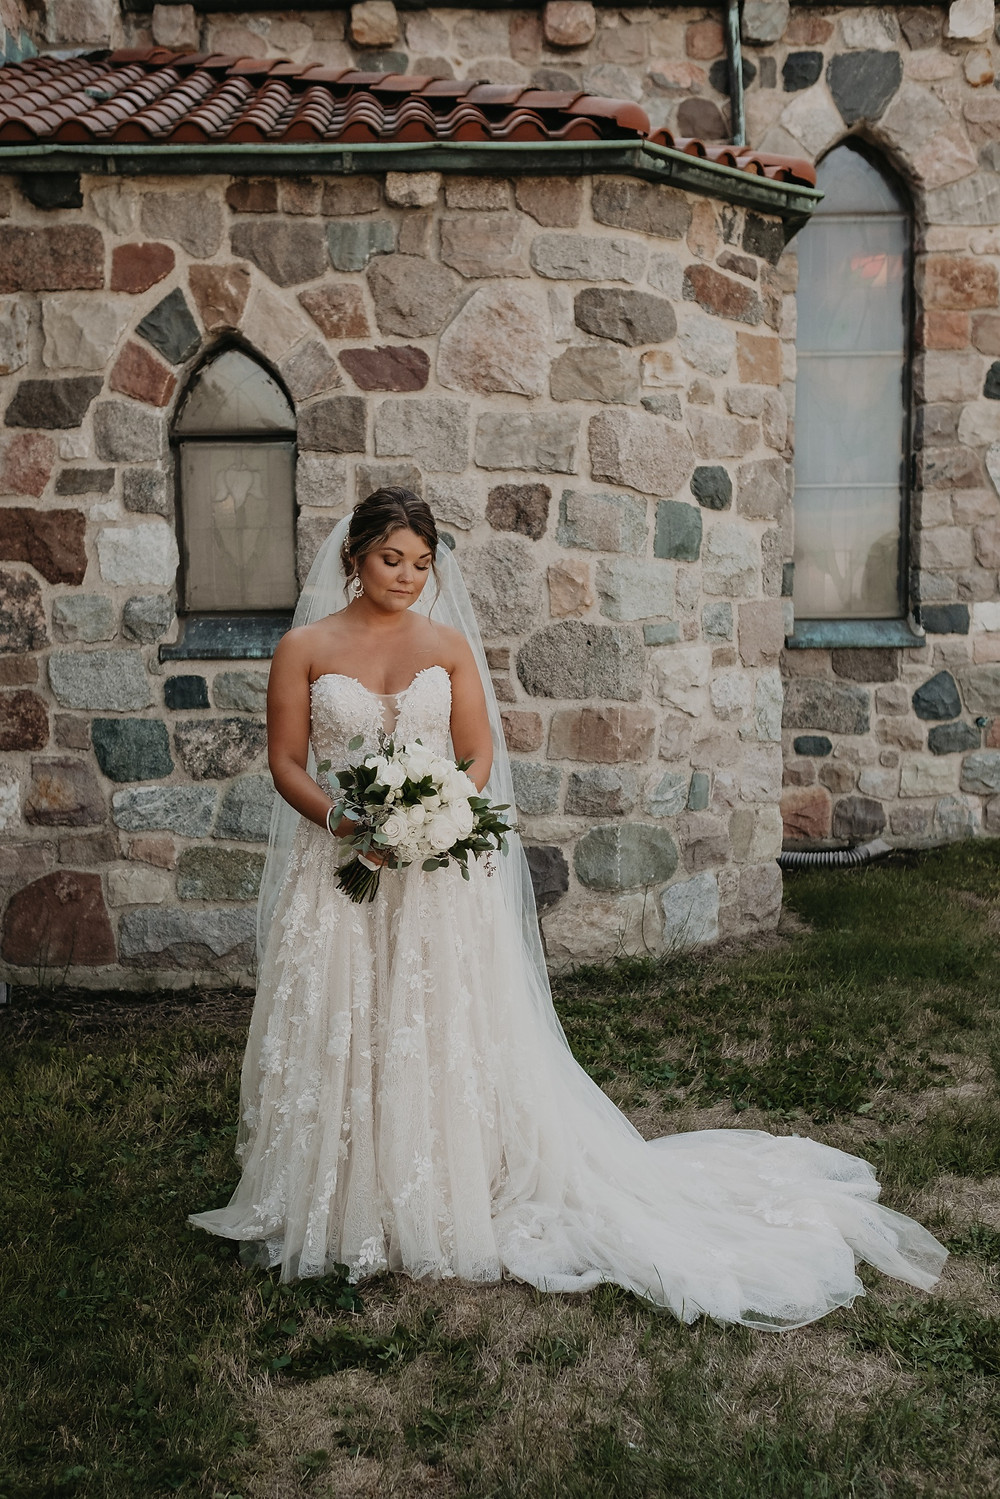 Wedding day bridal portrait. Photographed by Nicole Leanne Photography.